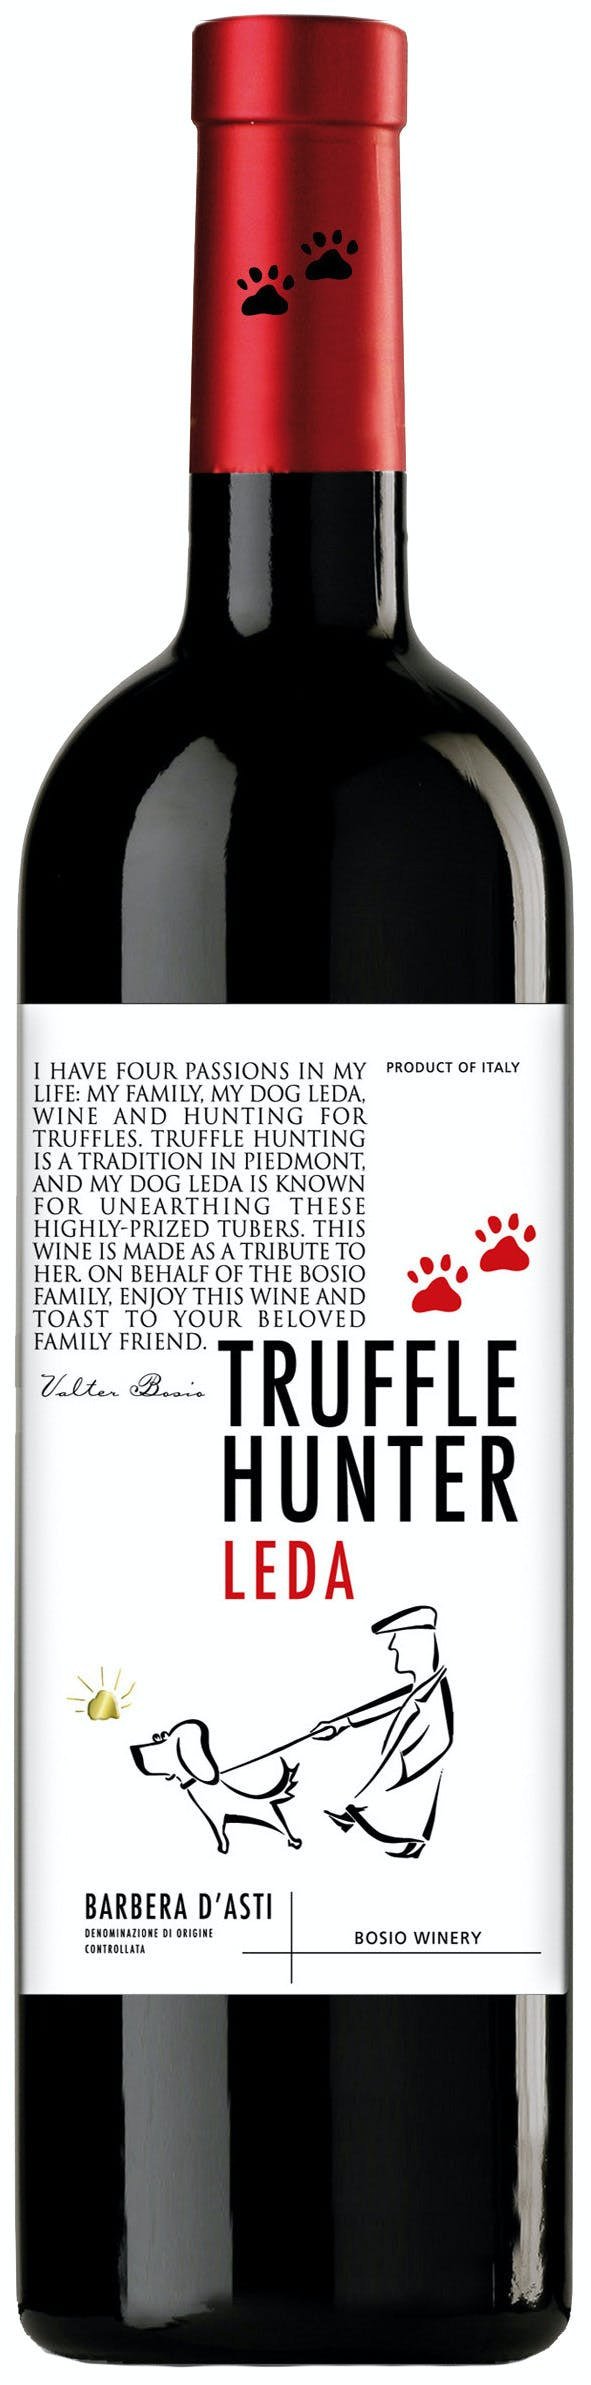 Truffle Hunter Leda Barbera d'Asti 2019